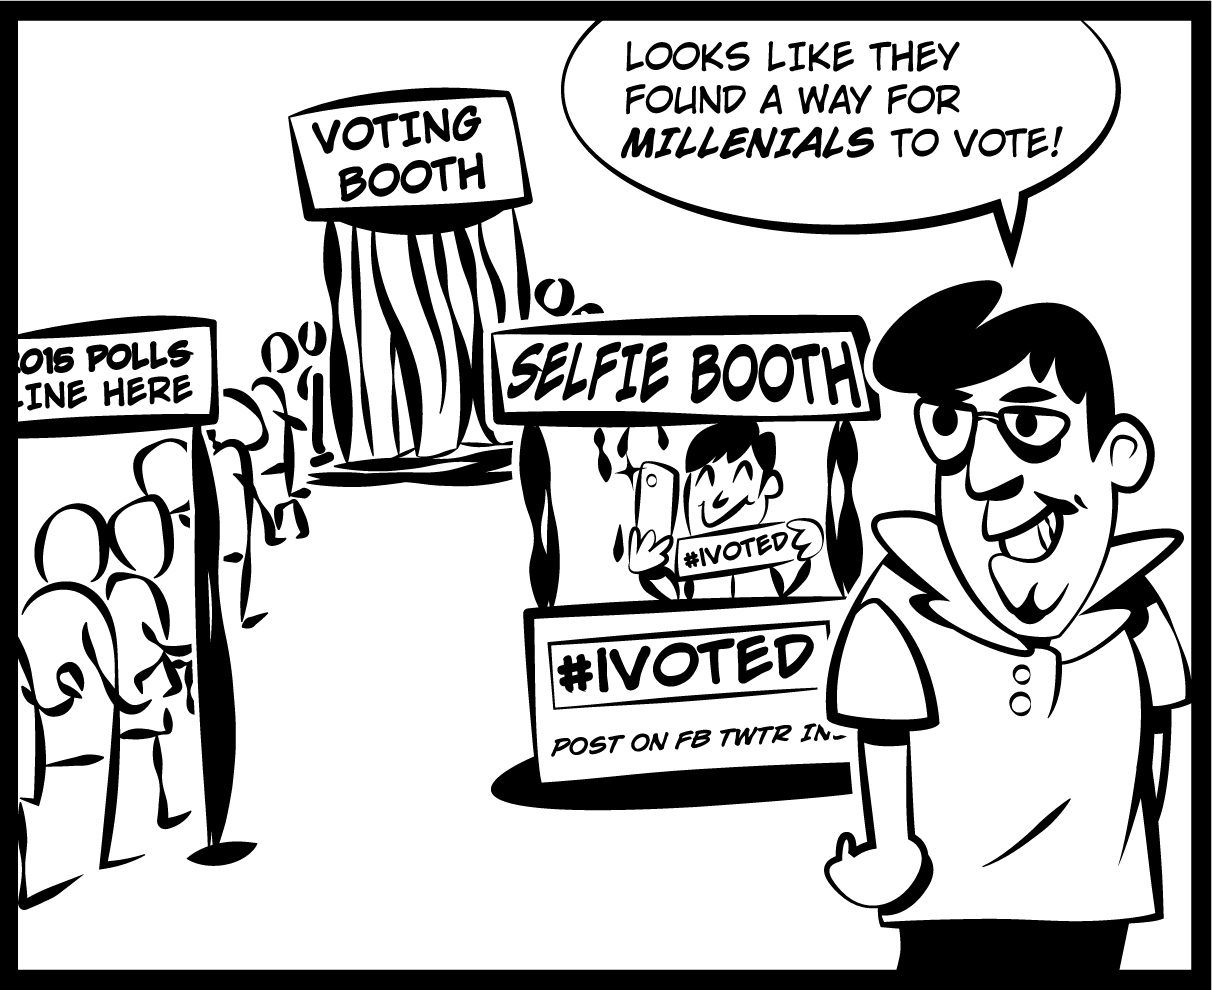 The struggle, the fight and the apathy for voting